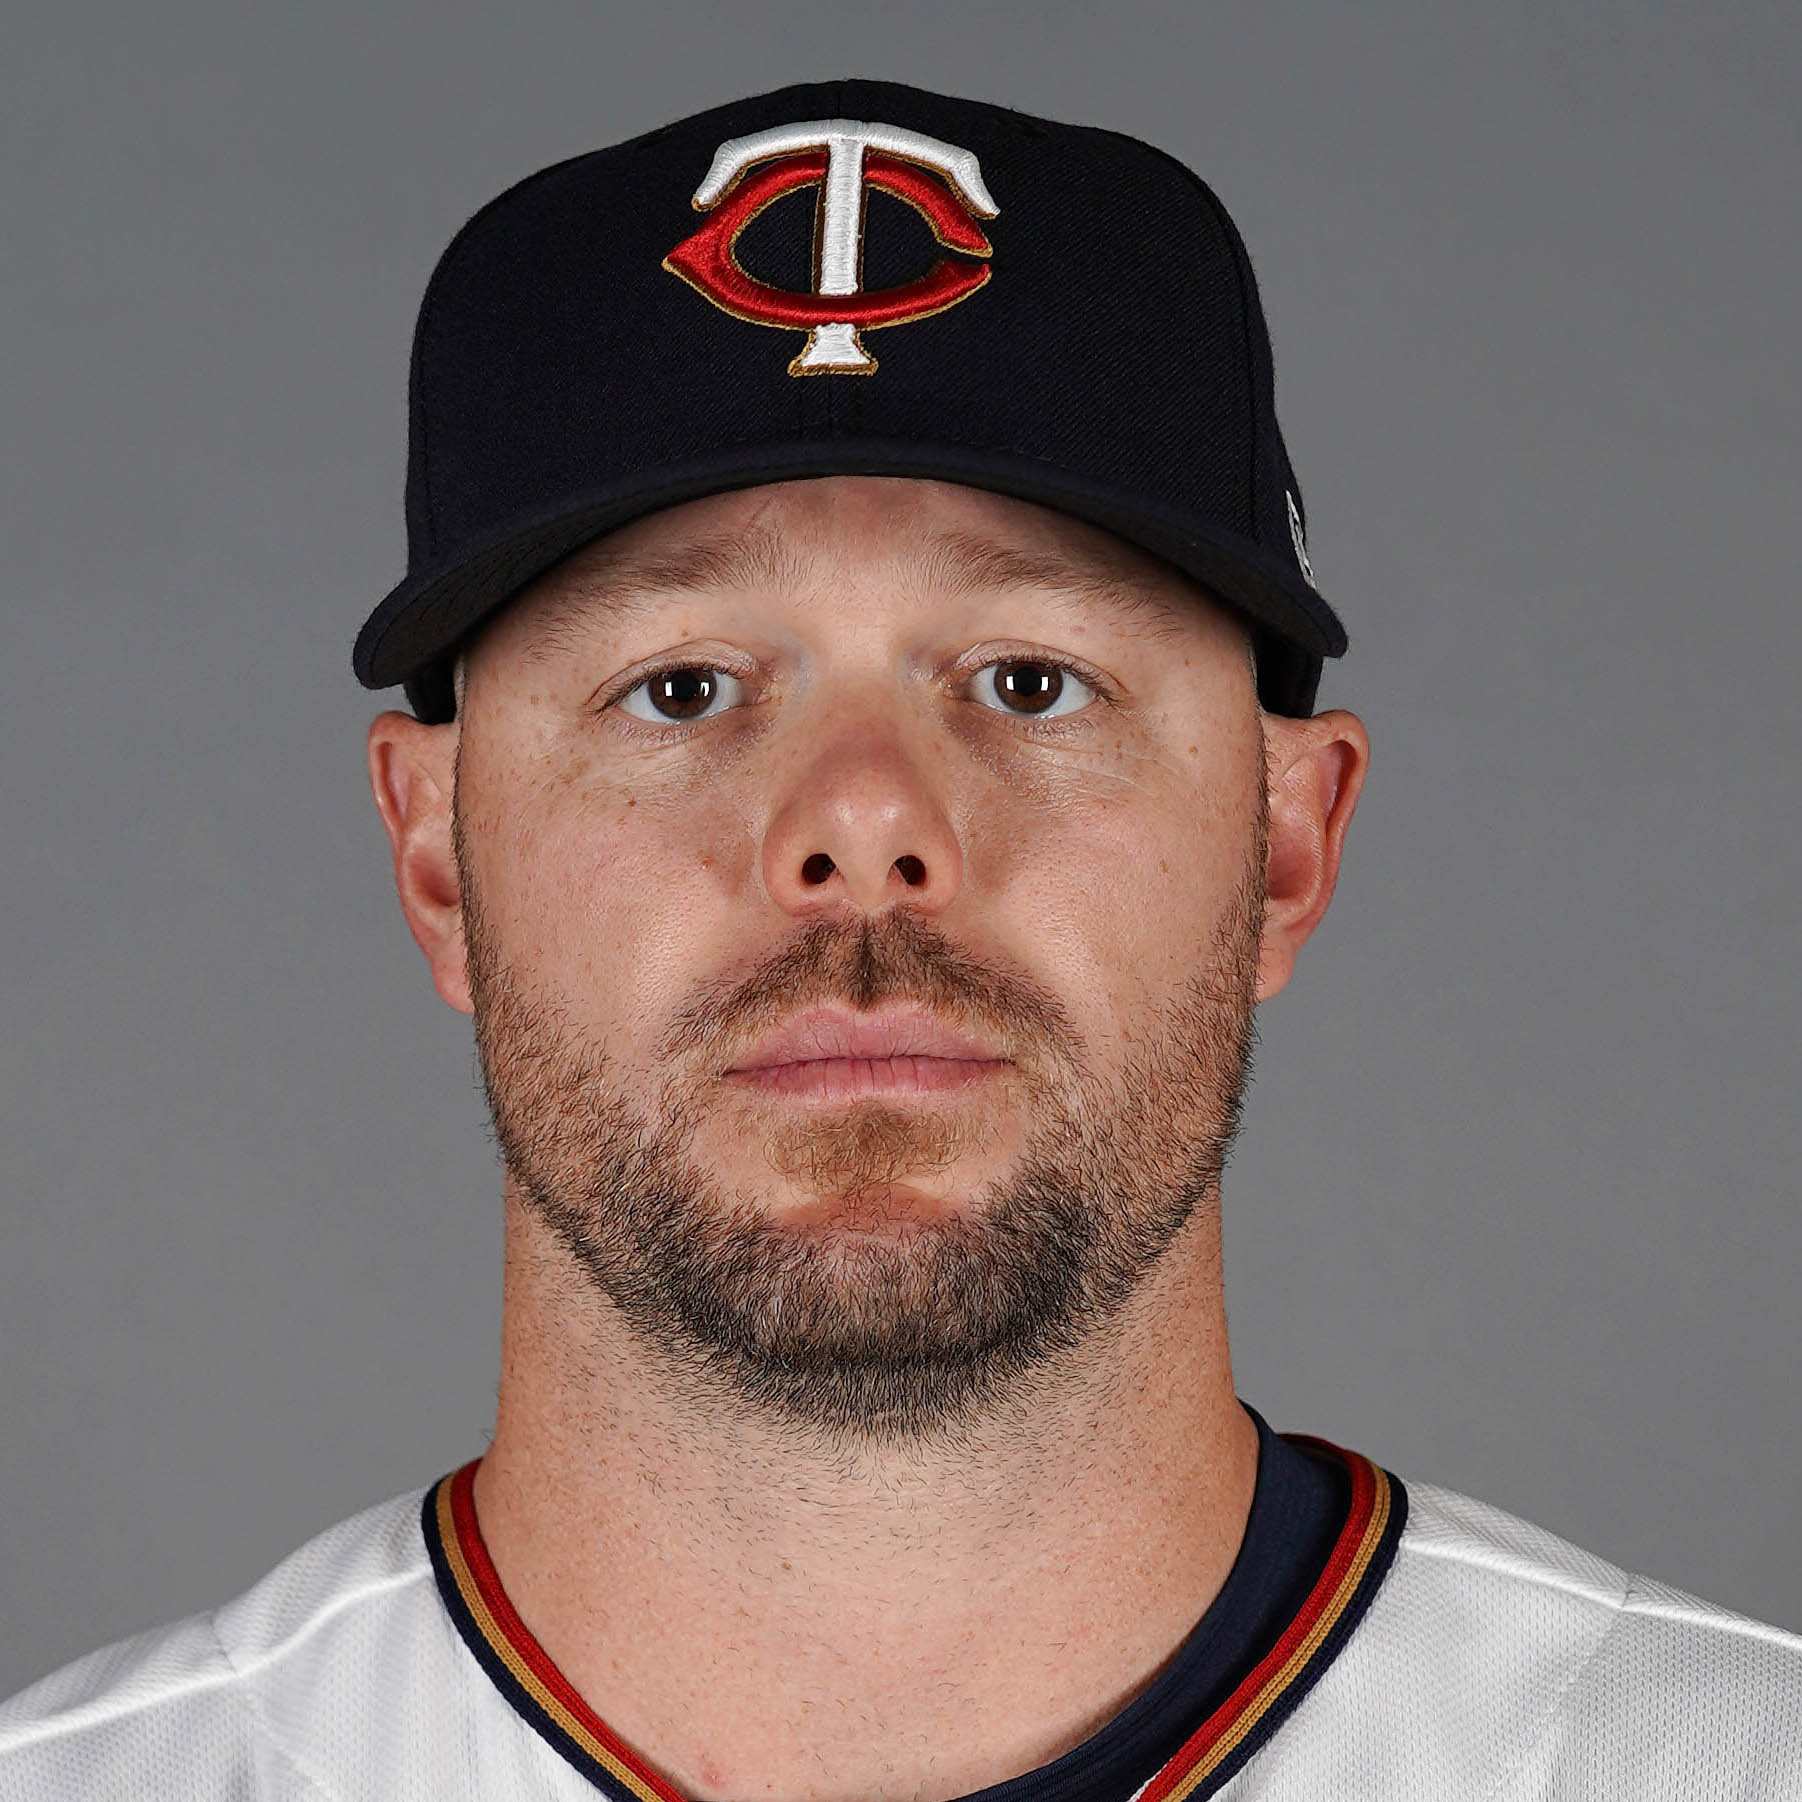 Ryan Pressly Headshot